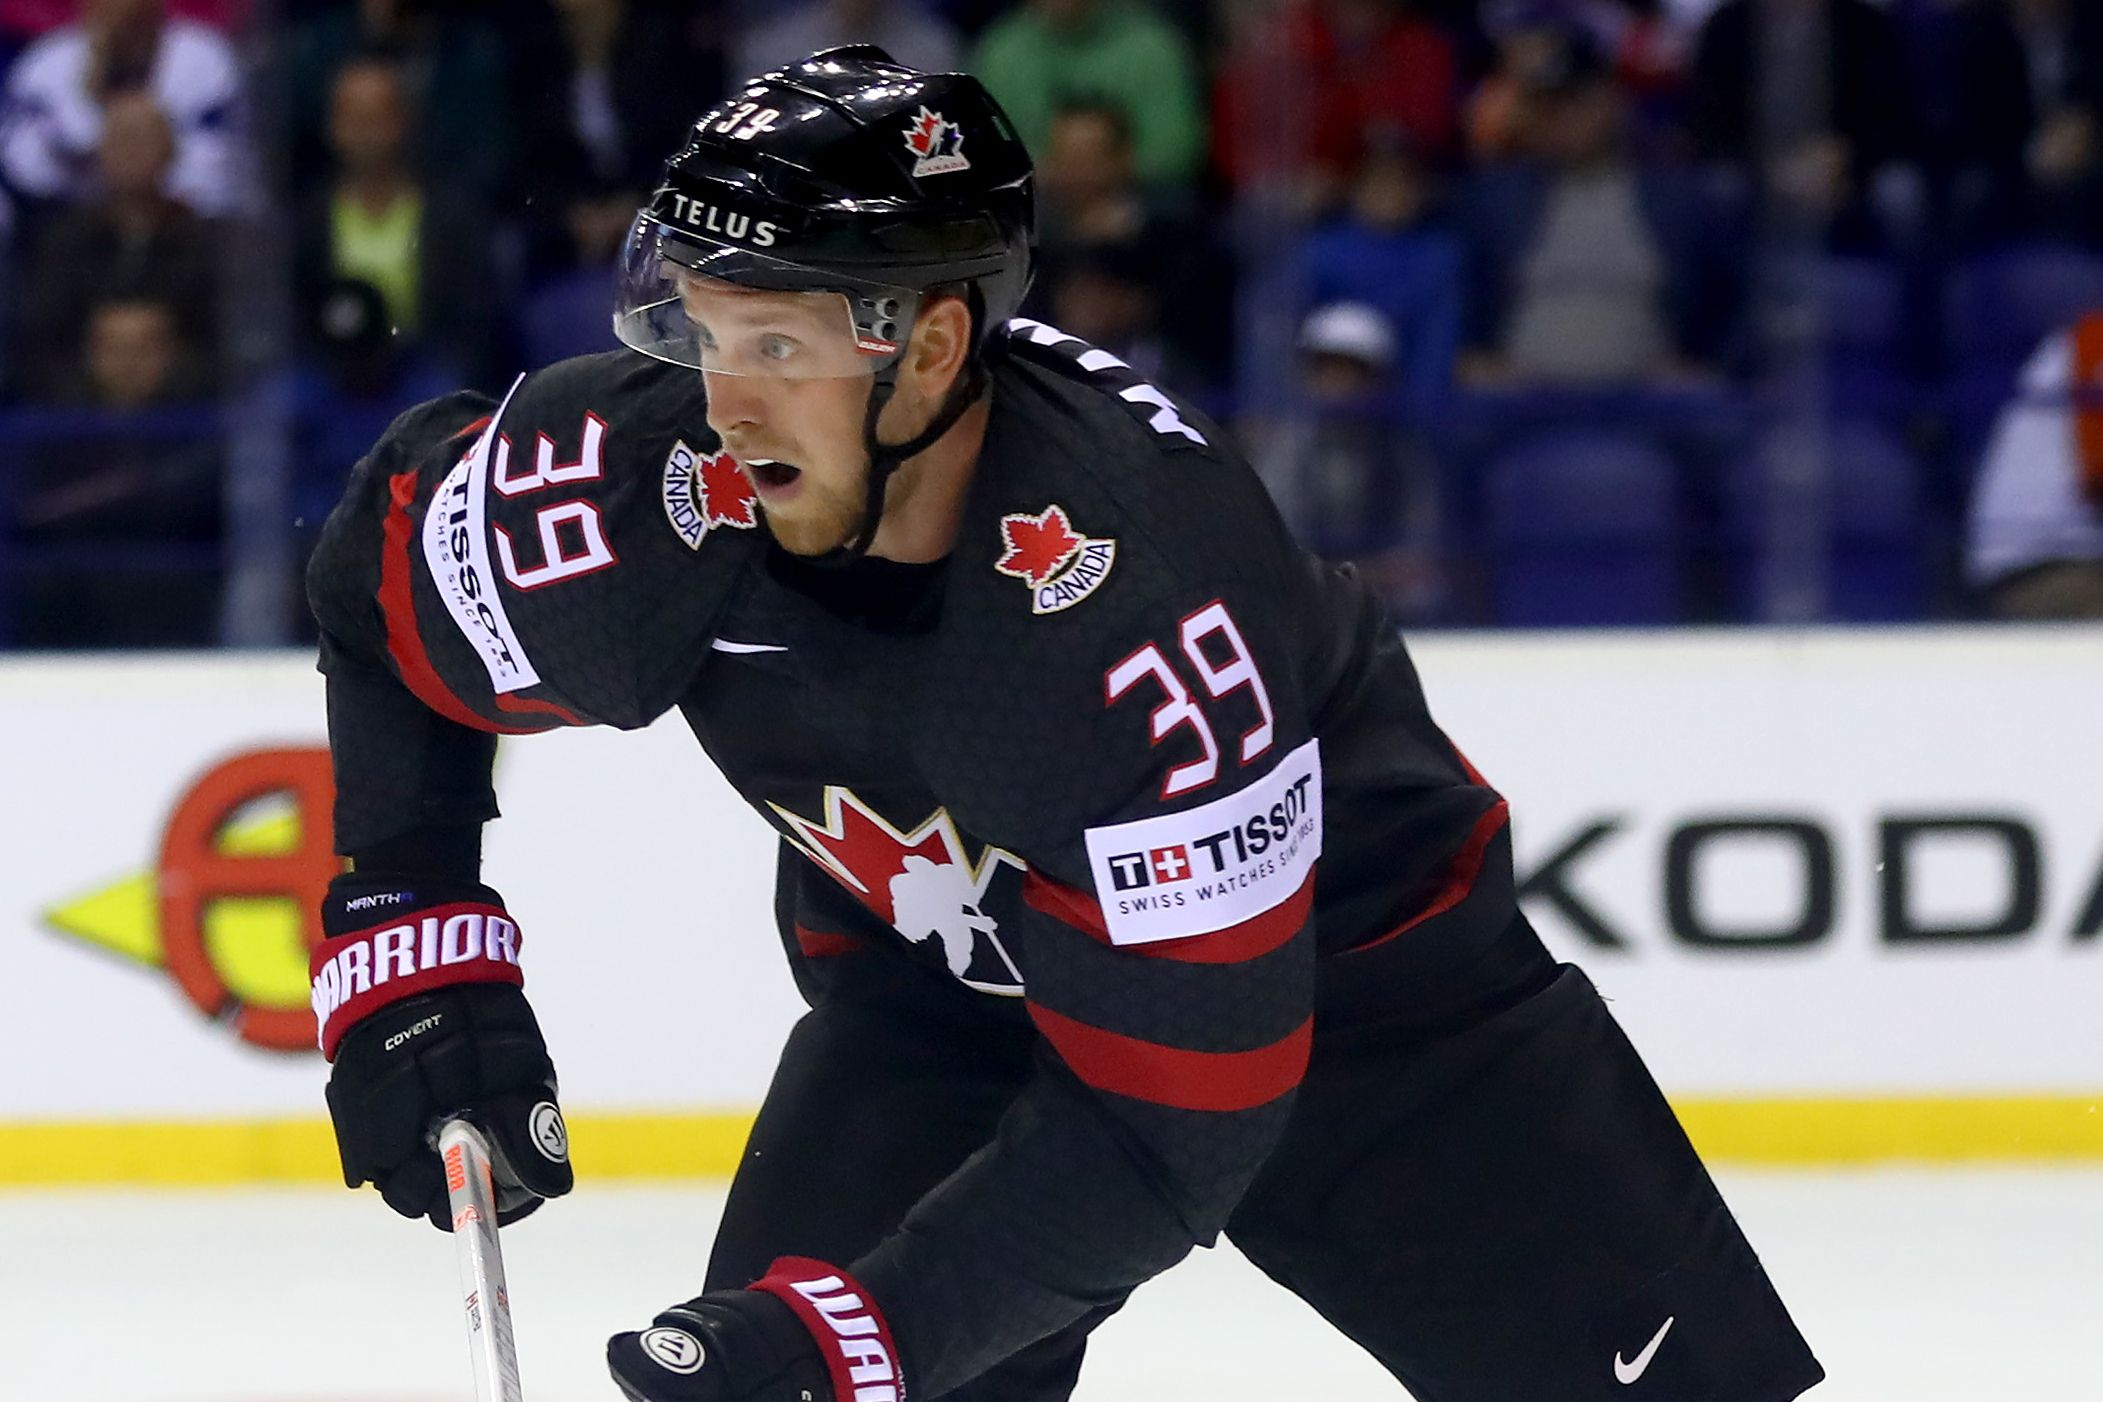 IIHF suspends Canada's Anthony Mantha one game for hit to the head, will miss quarter-final